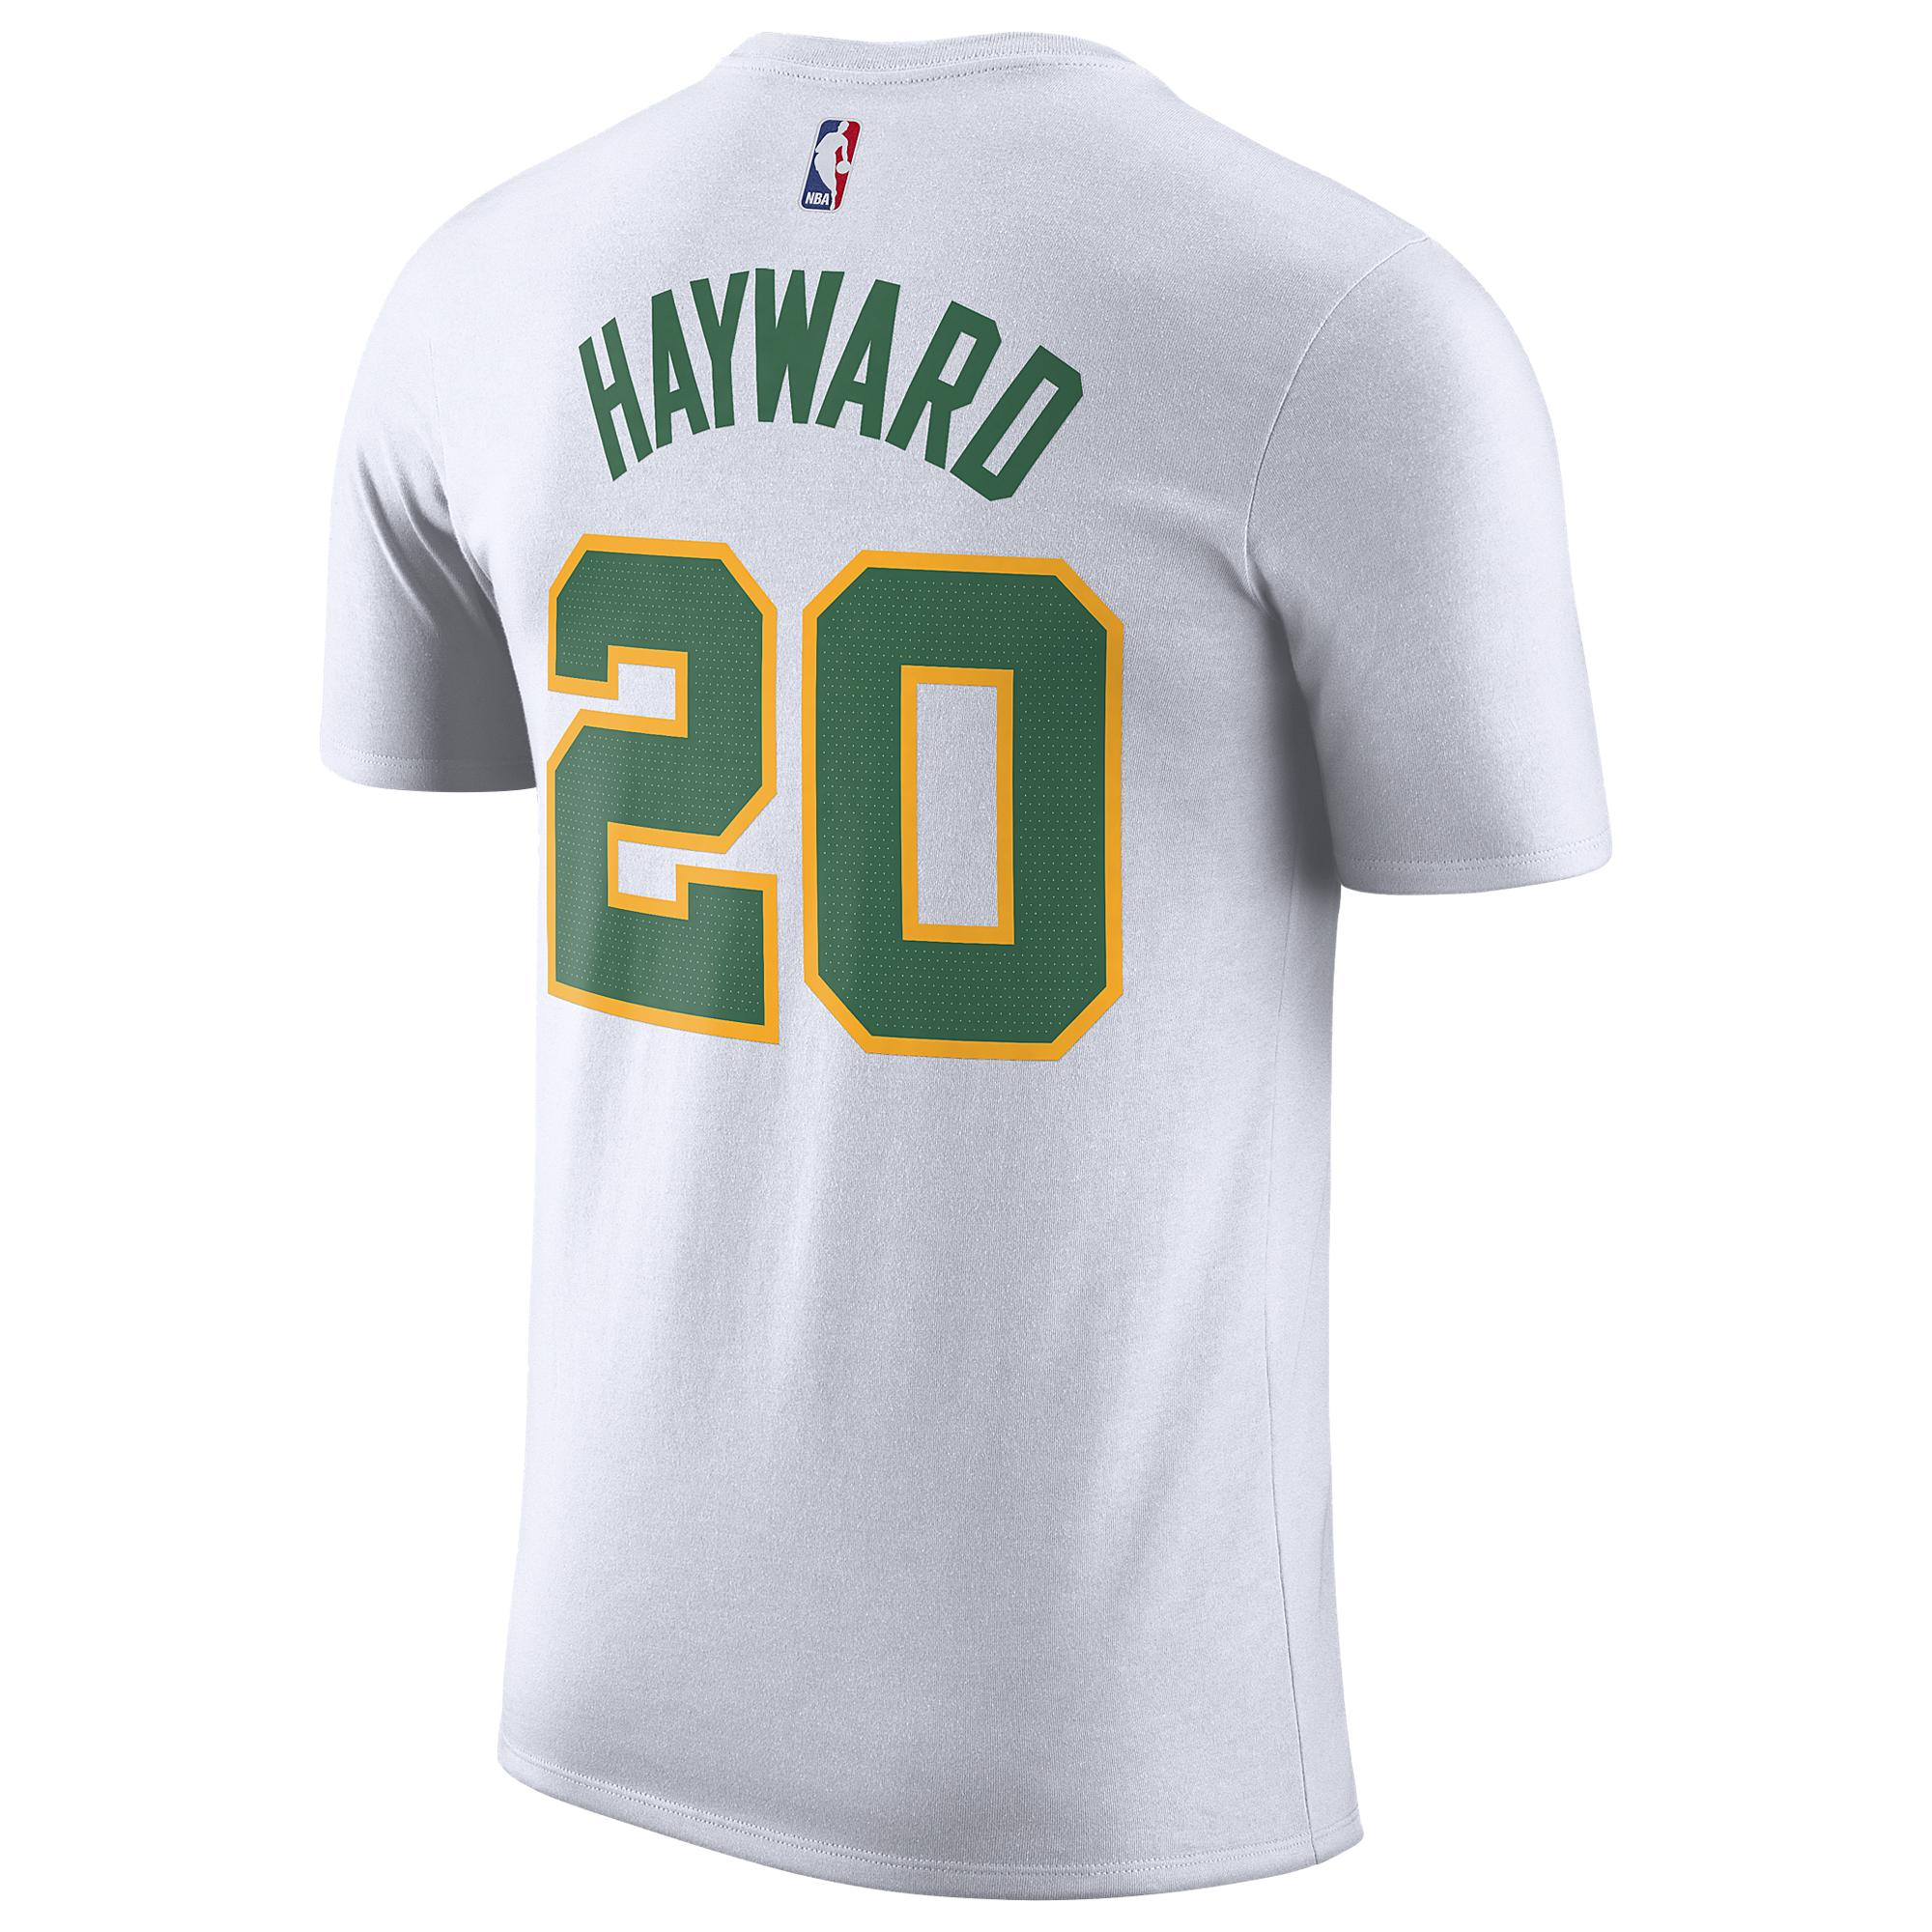 dcecb5b4264 Nike Gordon Hayward Nba City Edition Name & Number T-shirt in White ...